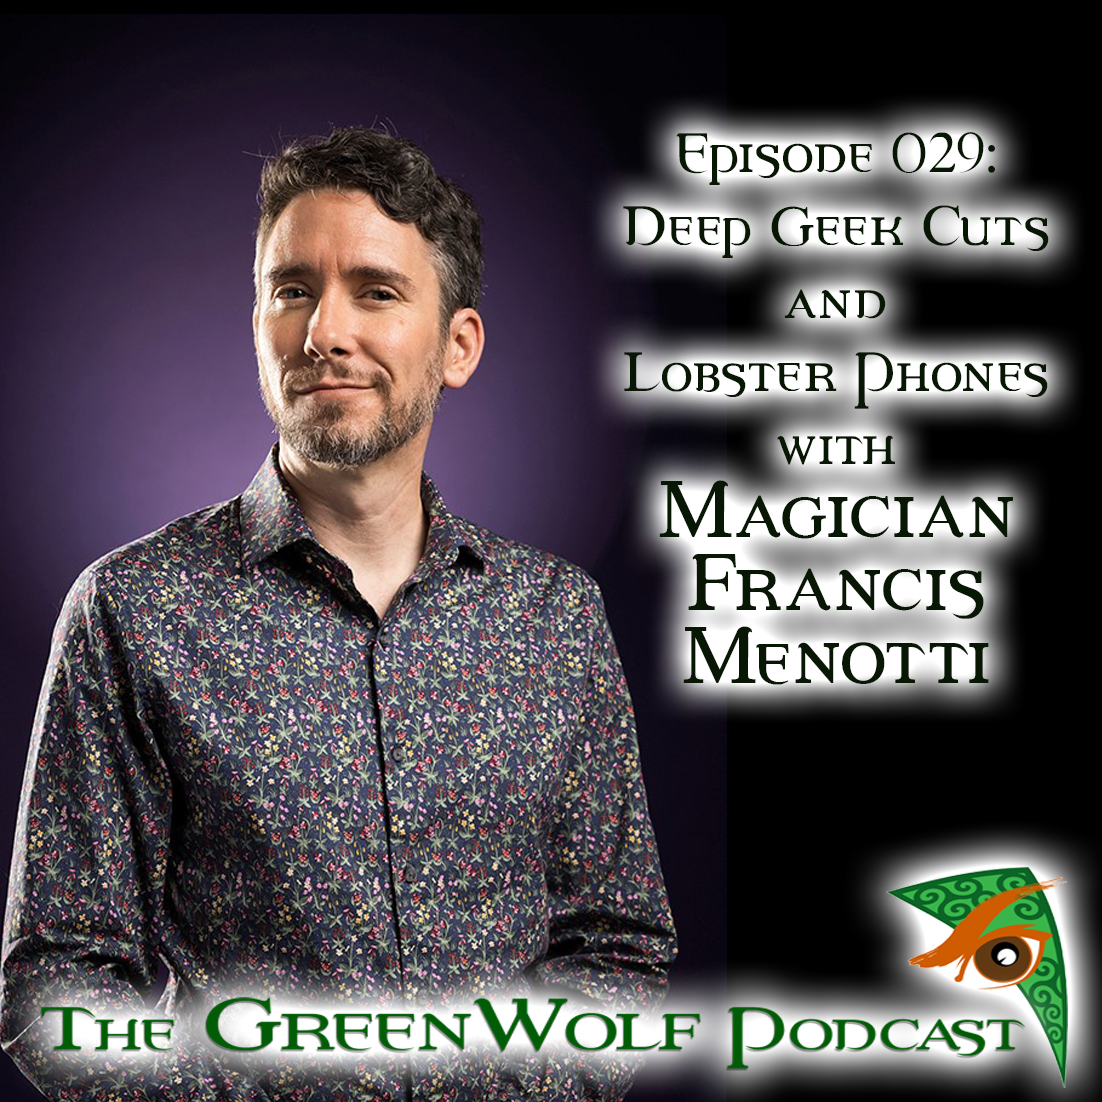 The GreenWolf Podcast - Ep 029- Deep Geek Cuts and Lobster Phones with Magician Francis Menotti